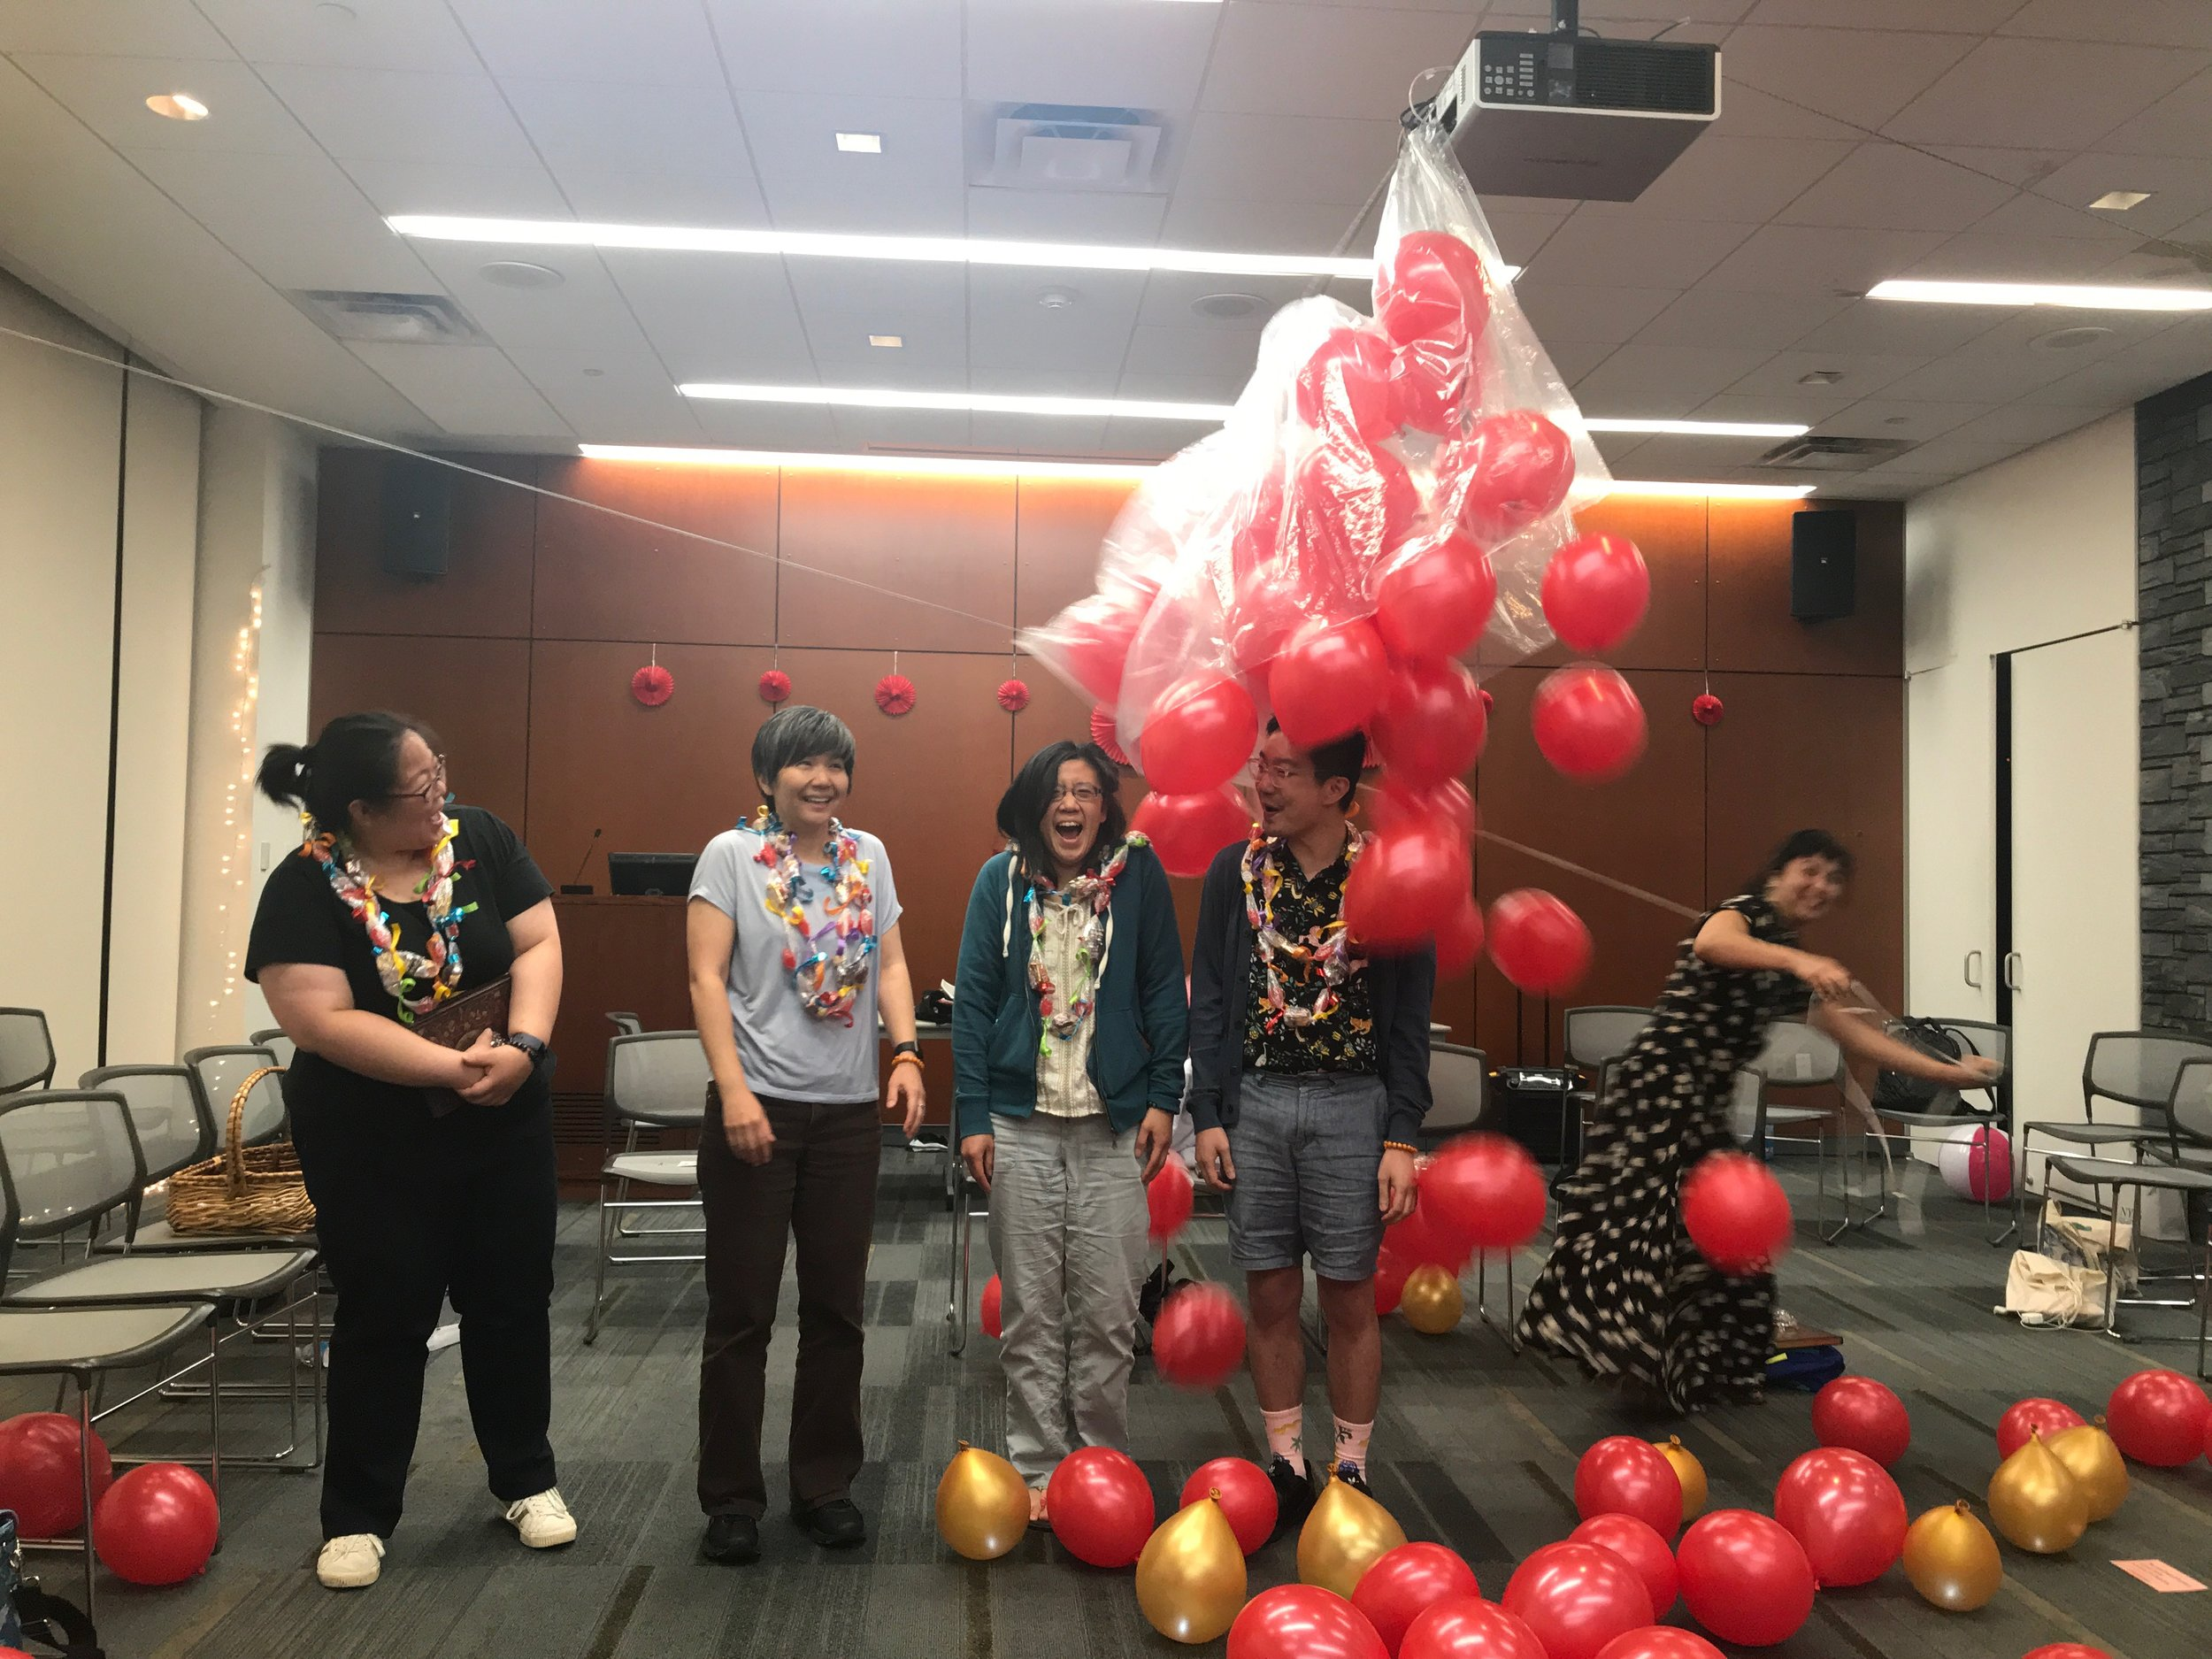 Graduating Fellows Diana Park, Heather Nagami, Jane Lin, and Chen Chen during the balloon drop!